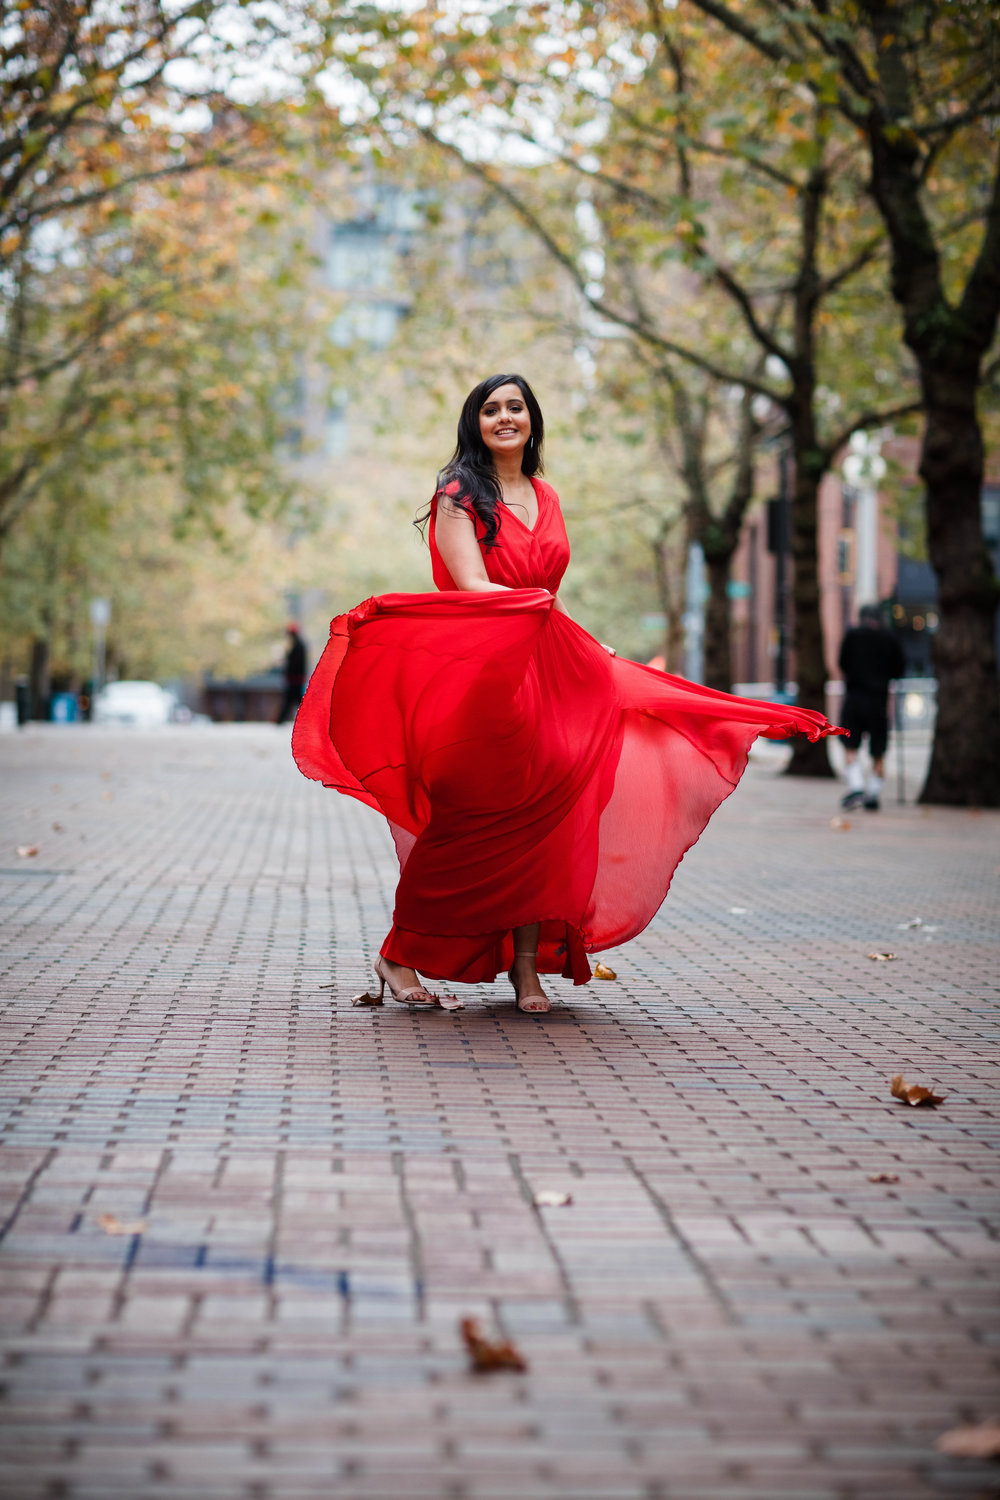 Sushat+Nancy_Engagement_Pioneer+Square_Sculpture+Park_Seattle_Oct2016_APW247.jpg